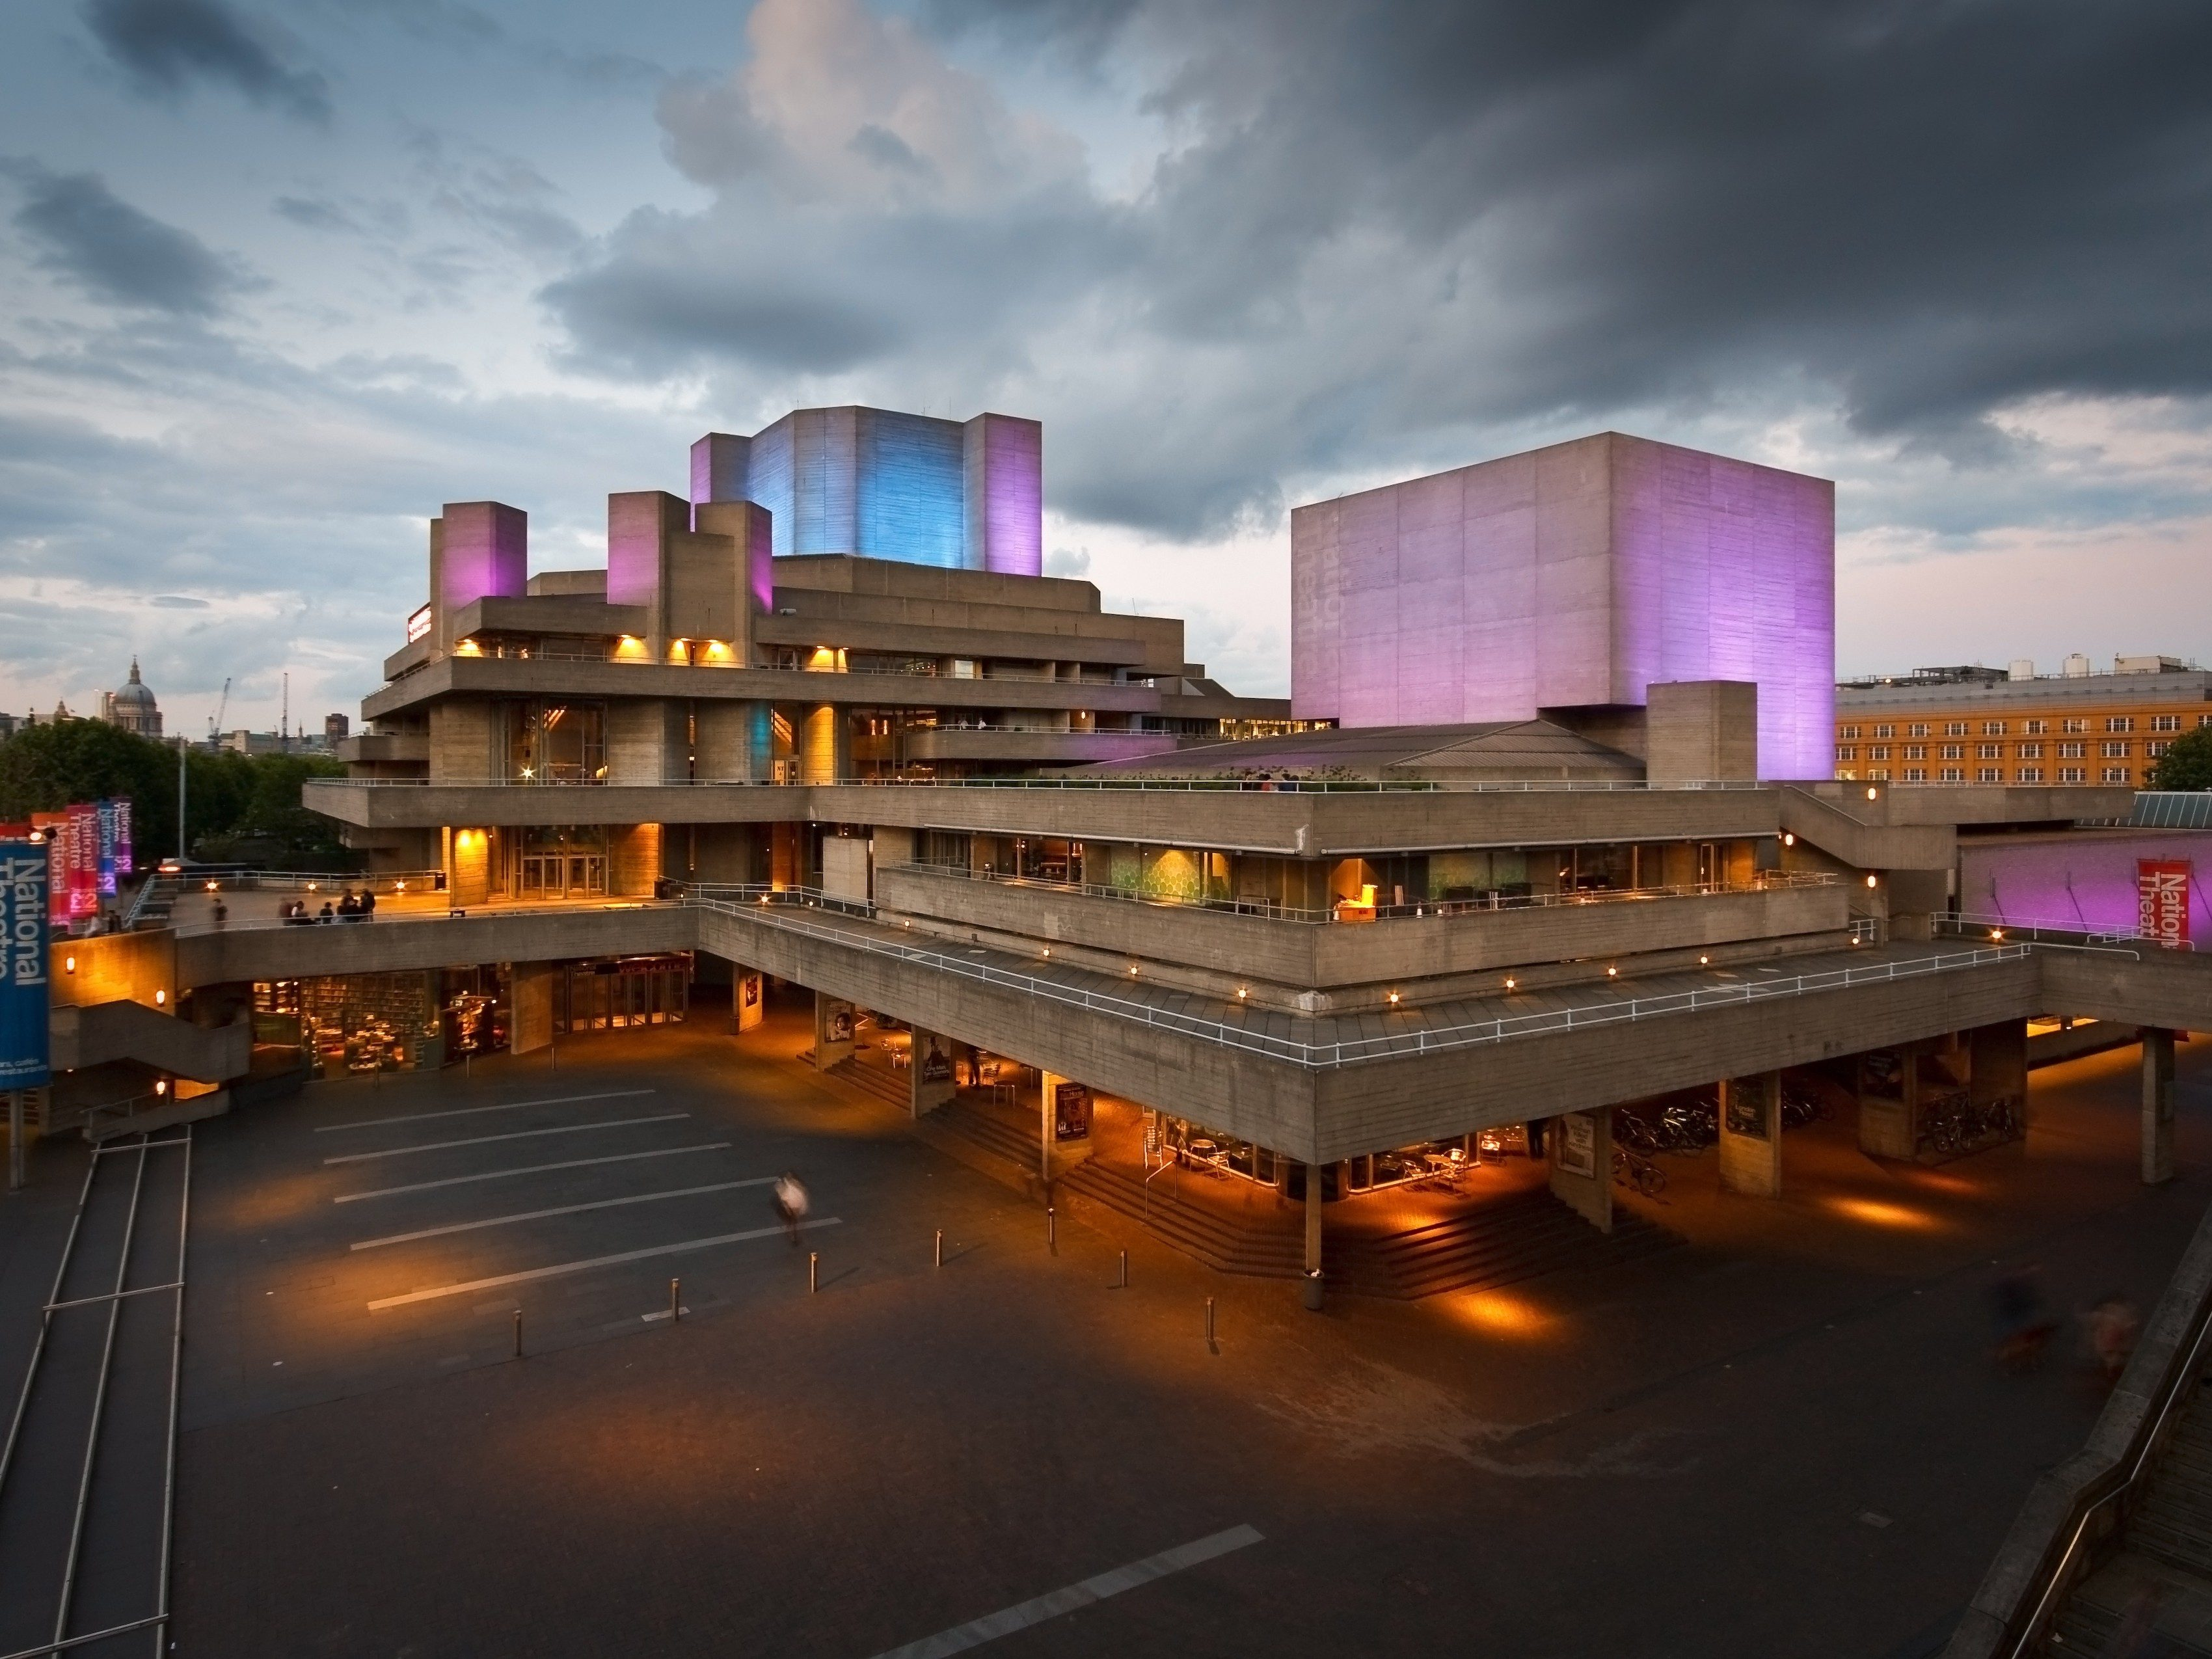 London attractions: The National Theatre